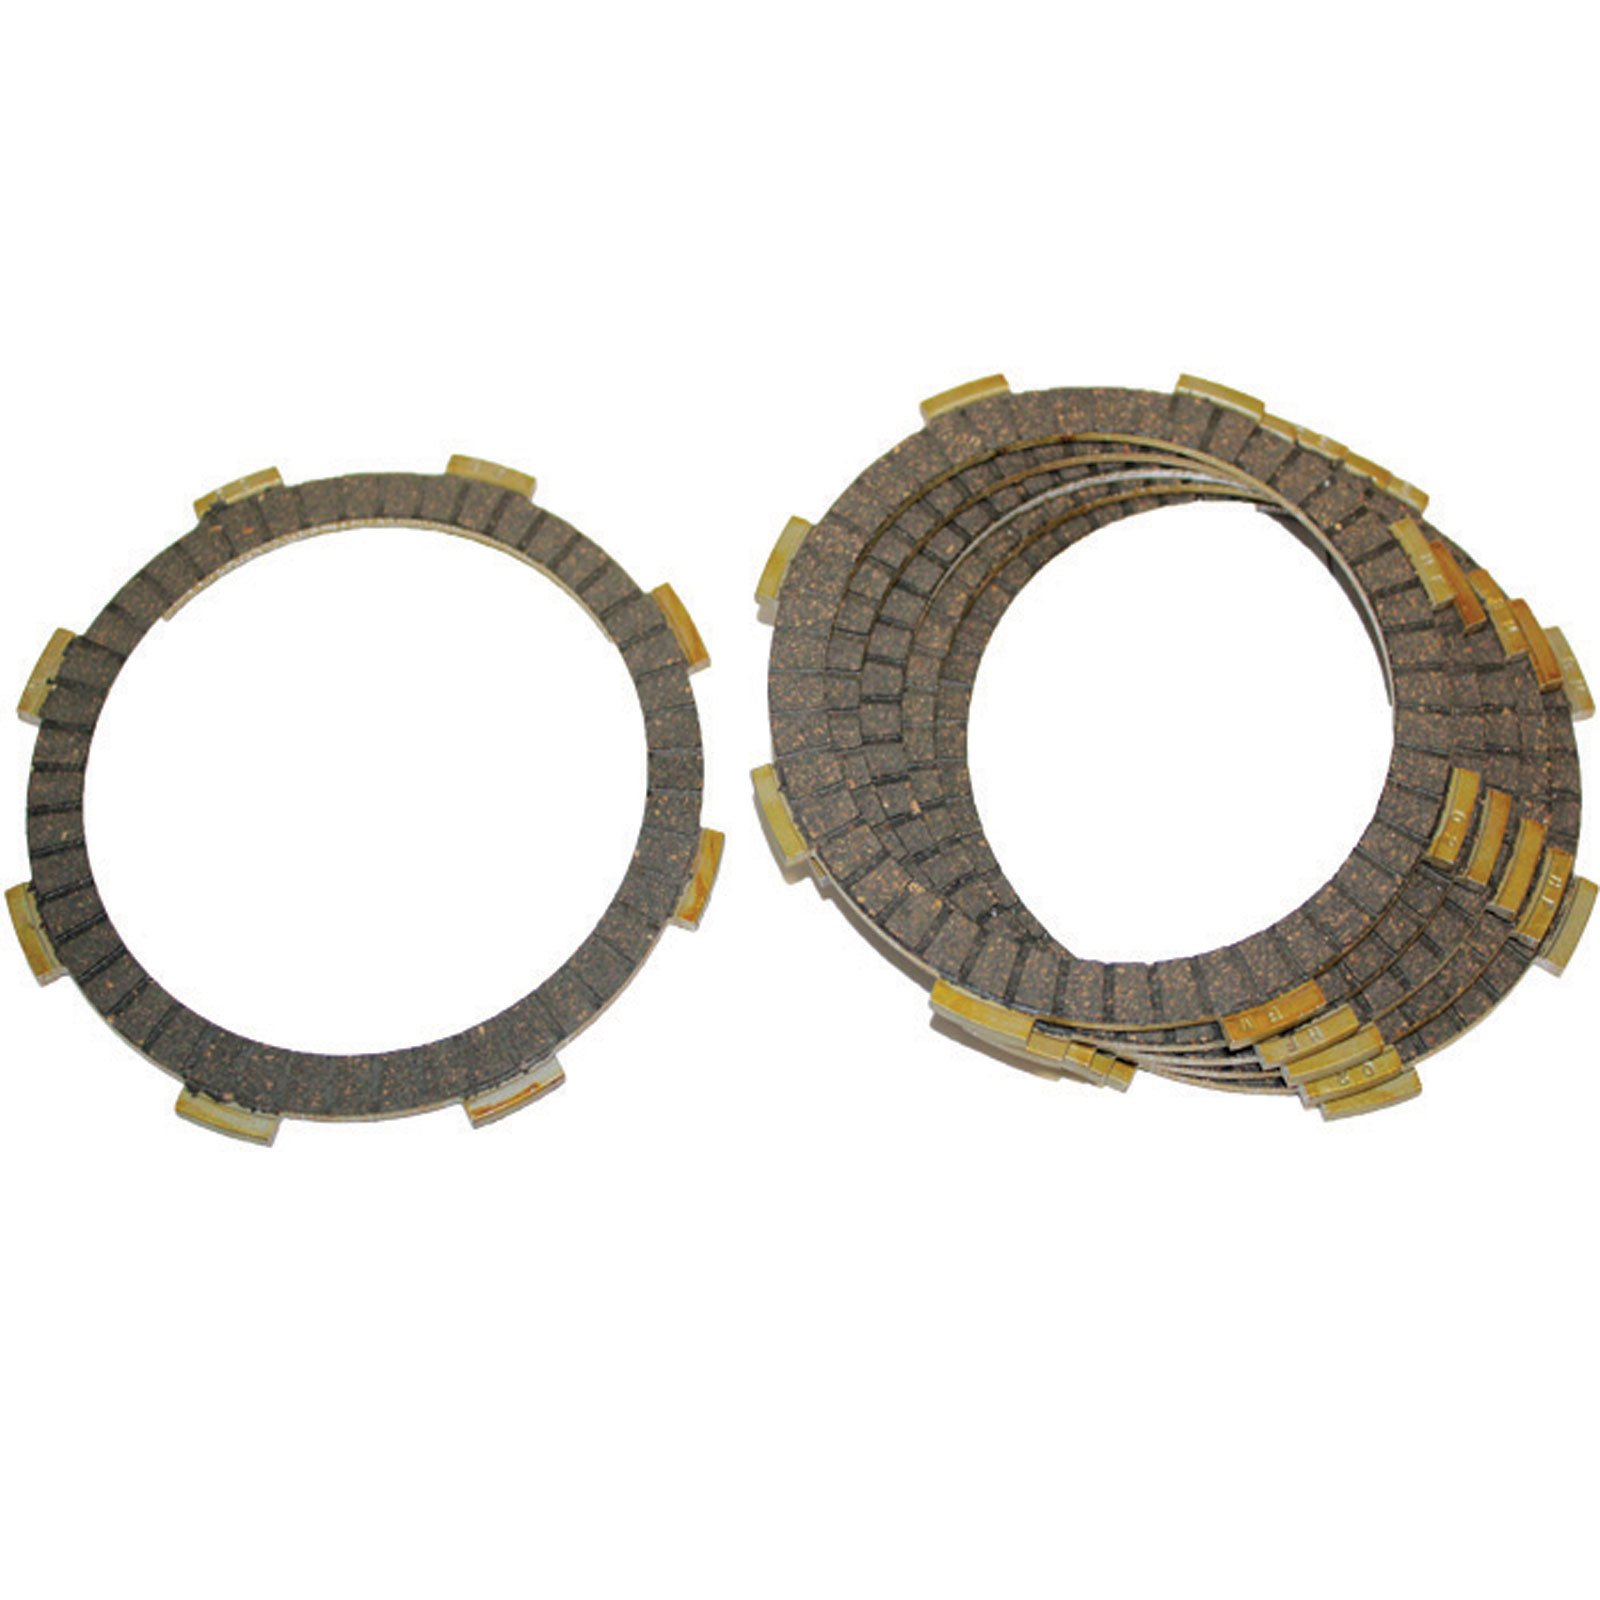 Caltric FRICTION CLUTCH PLATE Fits HONDA CMX250 CMX-250 CMX250C REBEL 250 CMX250C2 1985-2012 6-PLATES by Caltric (Image #1)